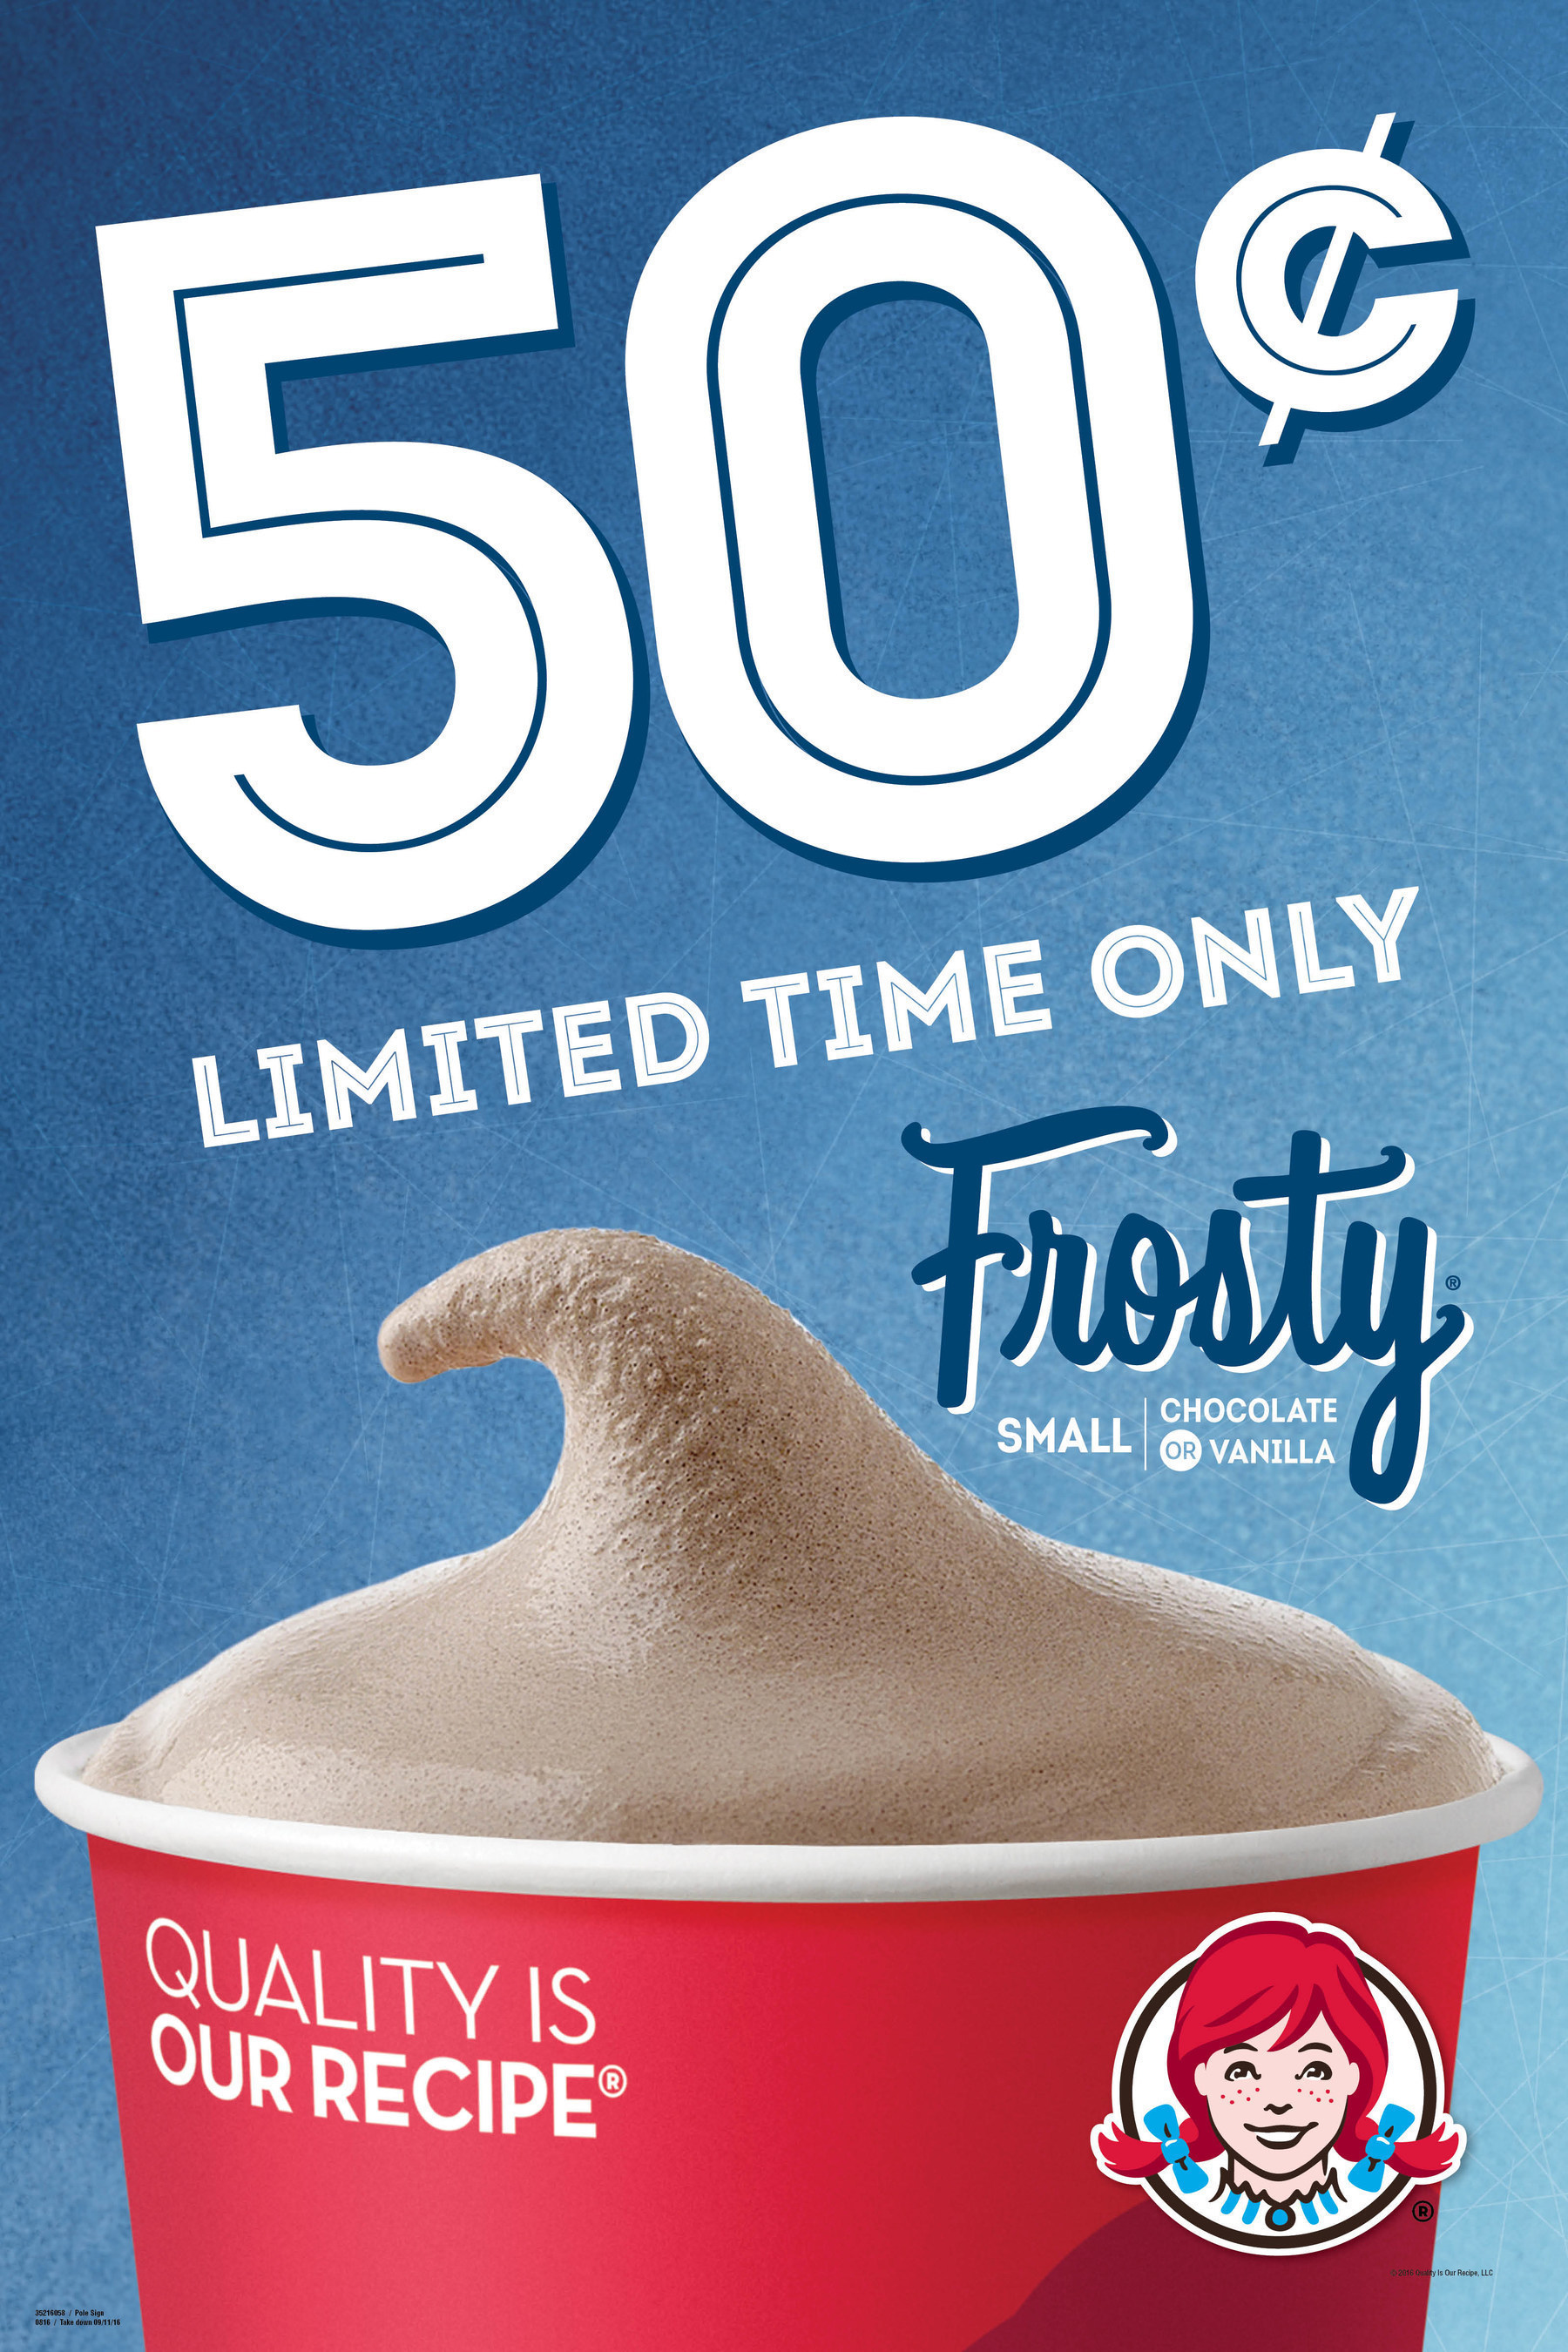 Wendy's is letting fans cool off with a sweet deal this summer. For a limited time only, consumers can head to participating Wendy's to get their hands on a small Frosty for only 50 cents. Made with quality ingredients like real cream and fresh milk, they're the best way to beat the heat during the sweltering summer.